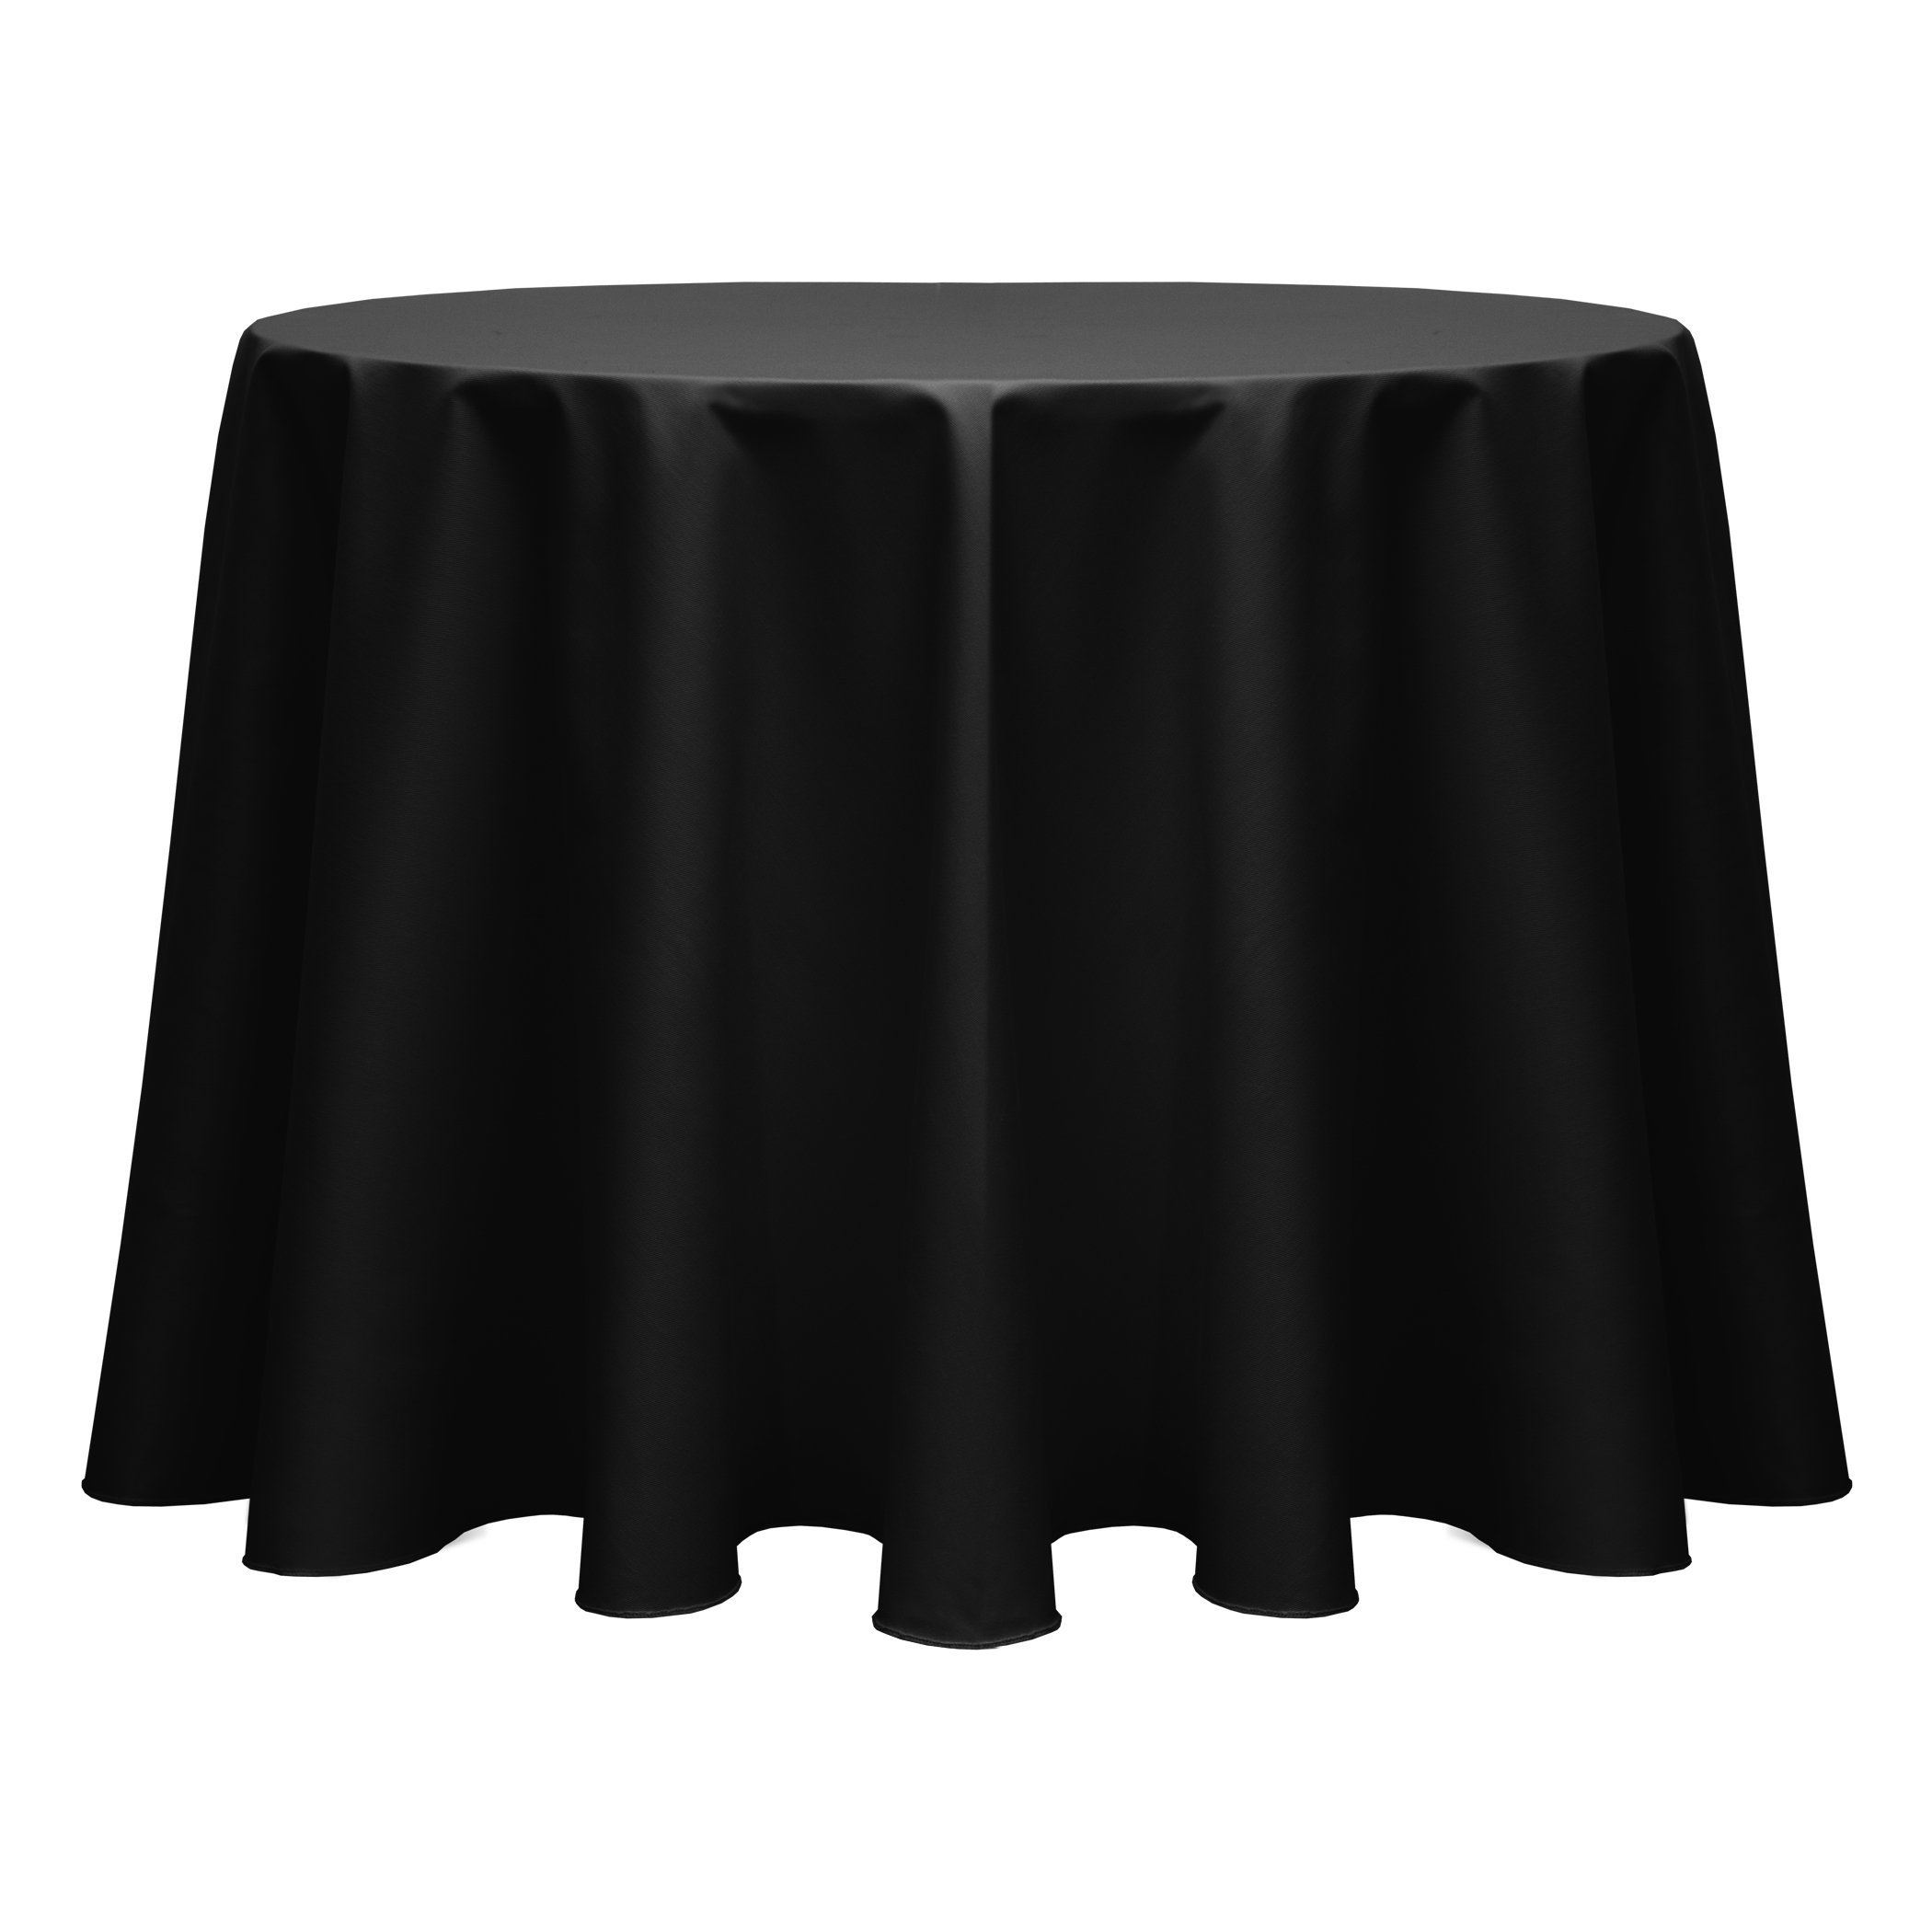 Ultimate Textile (10 Pack) Poly-cotton Twill 70-Inch Round Tablecloth - for Restaurant and Catering, Hotel or Home Dining use, Black